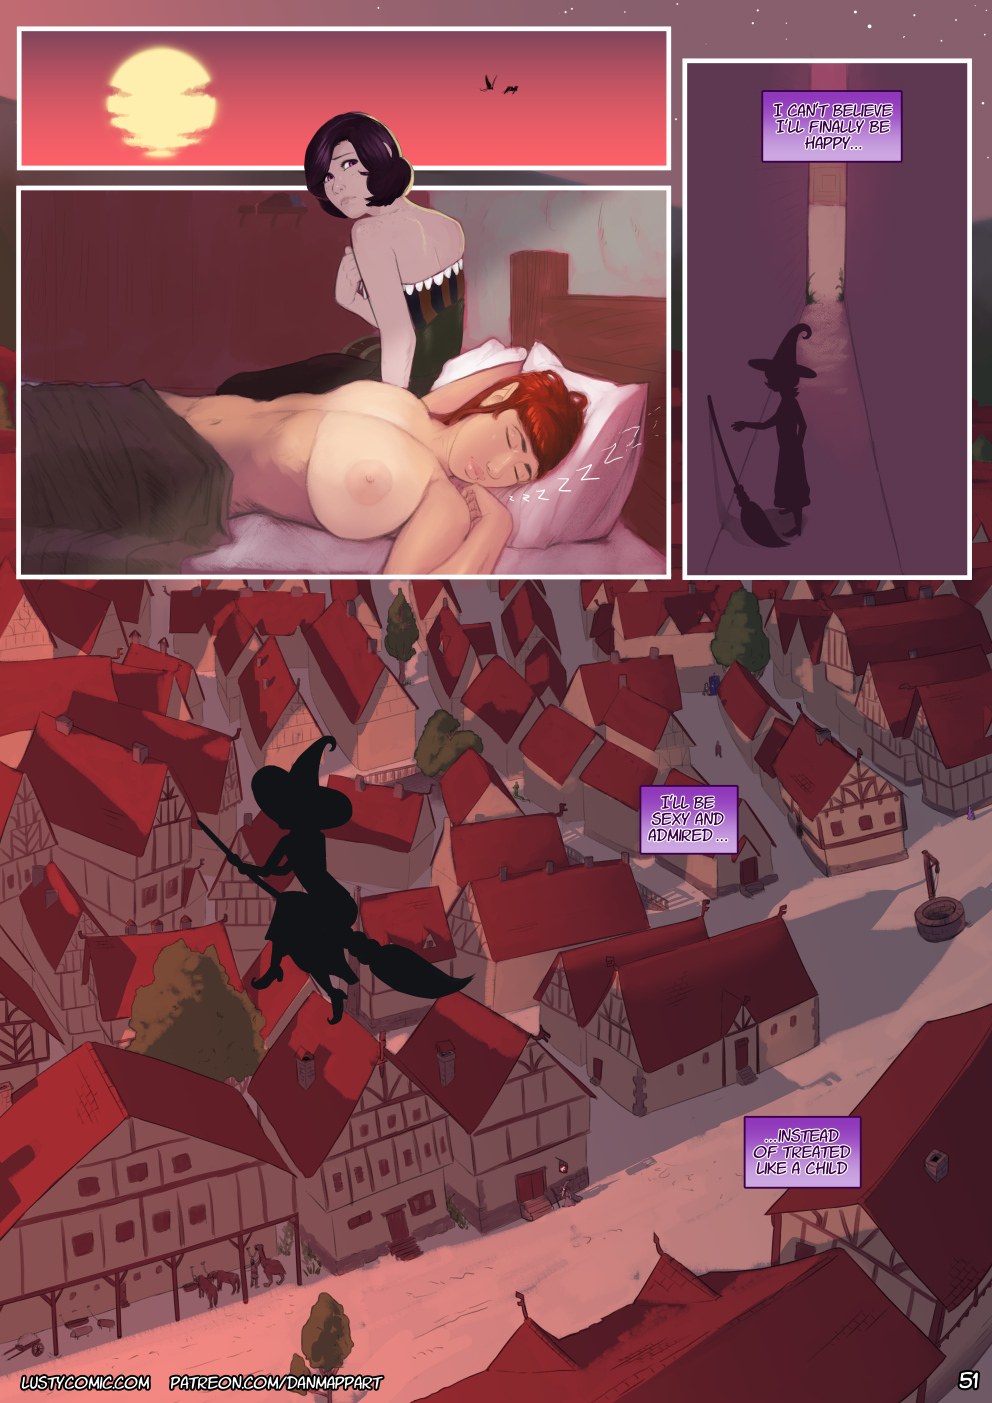 Easter eggs on this page: Gandalf, Snakelord from chapter one, The Doctor and the TARDIS, and Purple Tentacle!